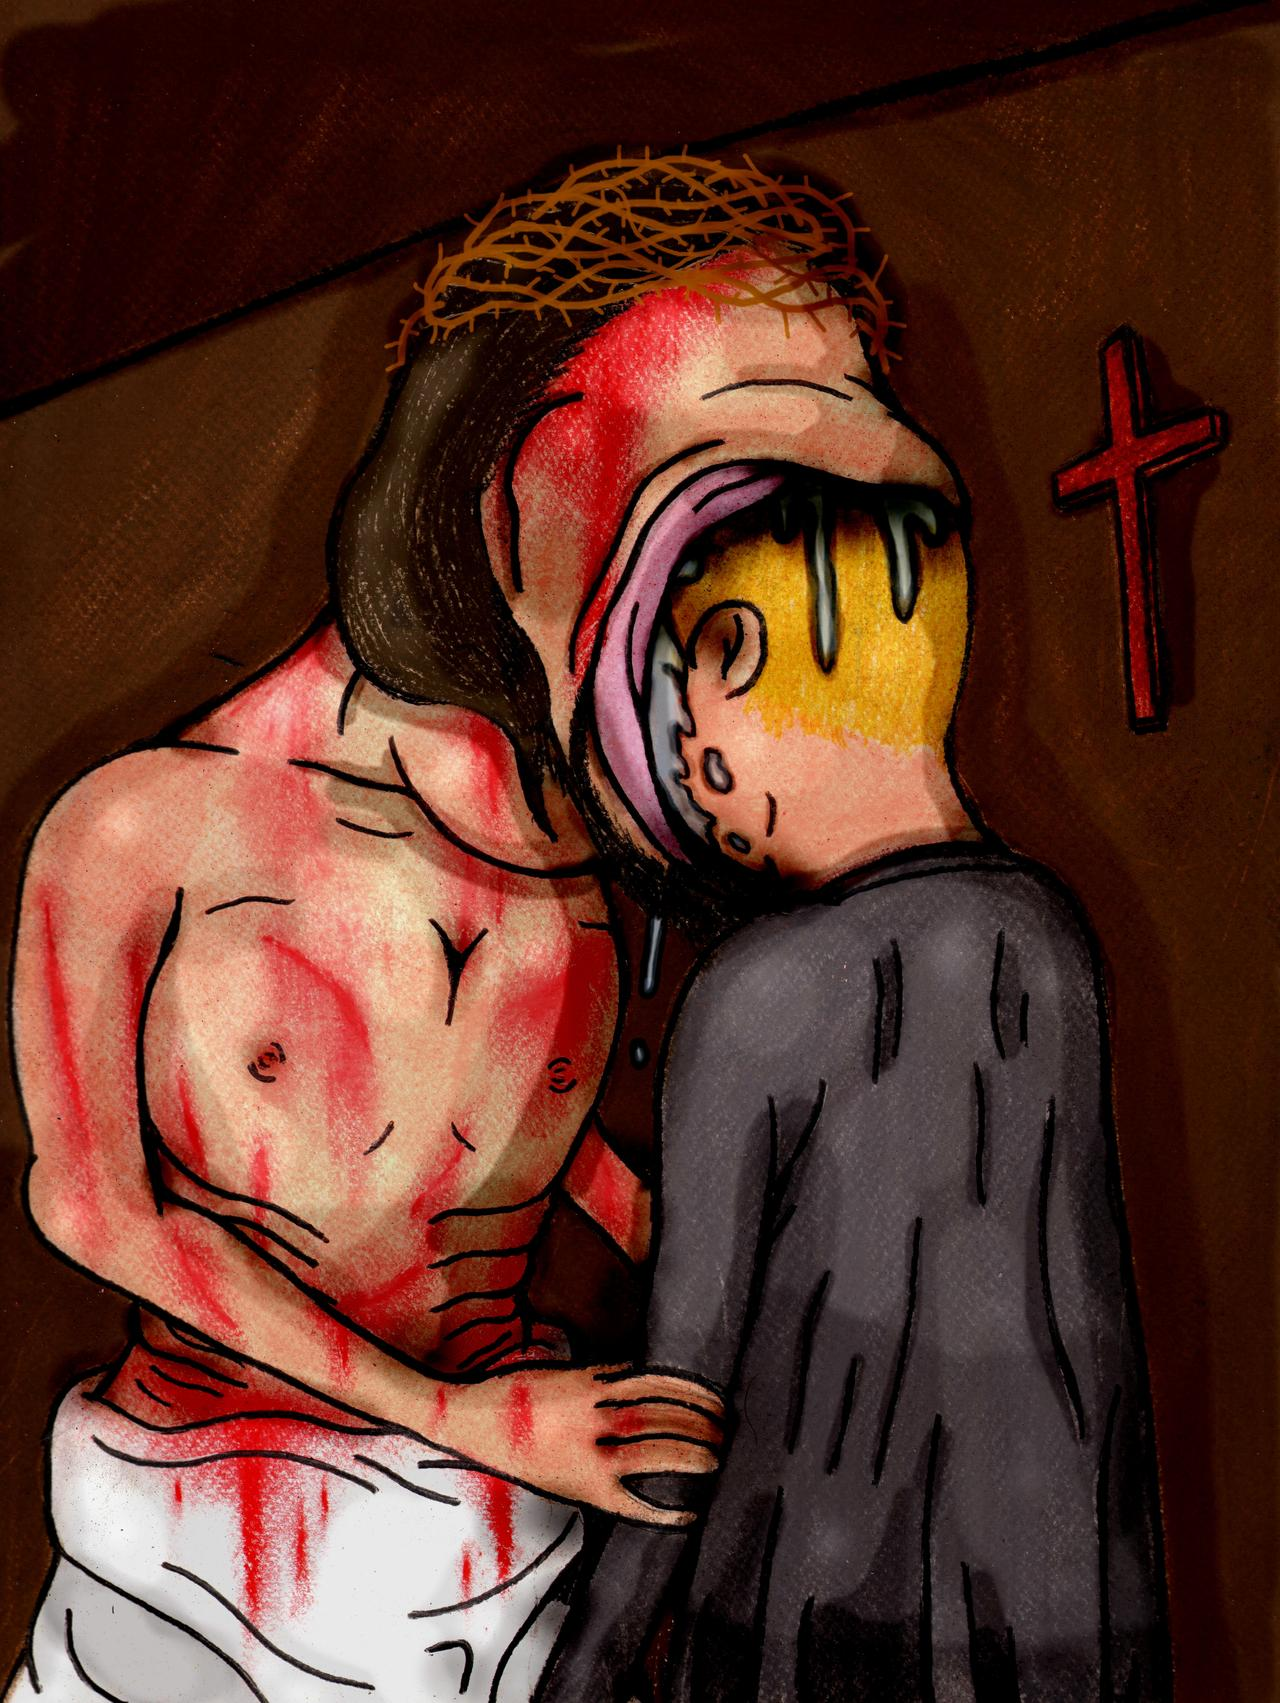 scp_5991_his_holy_digestive_tract_by_charcoalman_ddv15u2-fullview.jpg